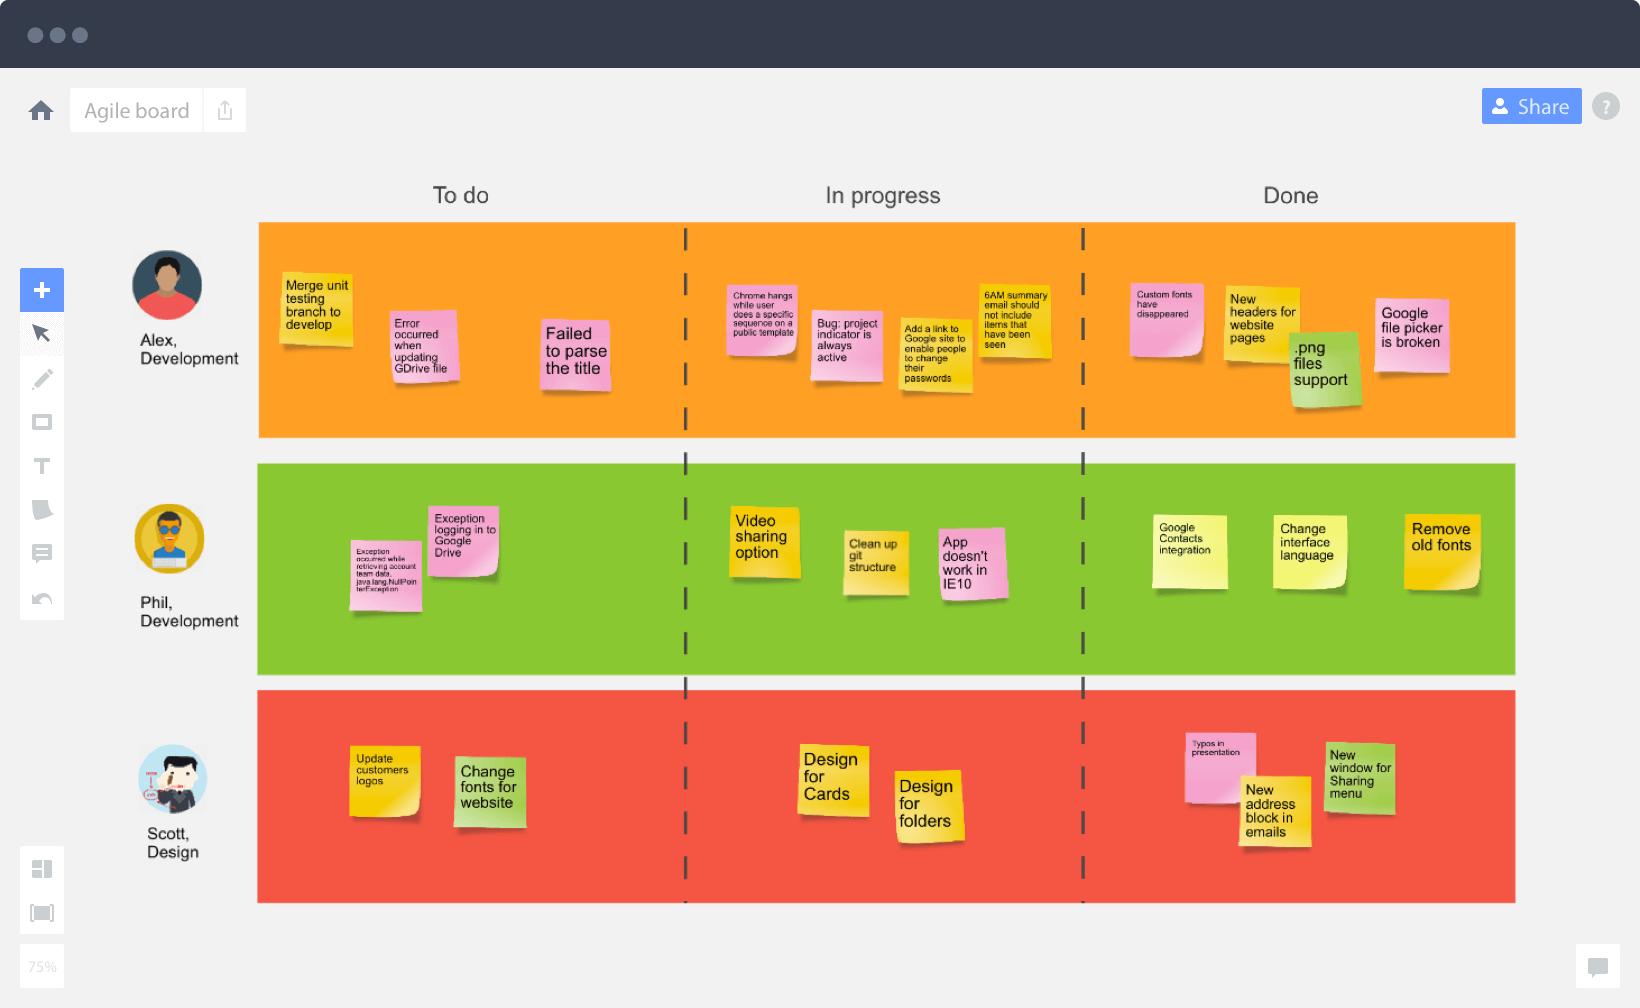 Project Timelines Very Simple Design